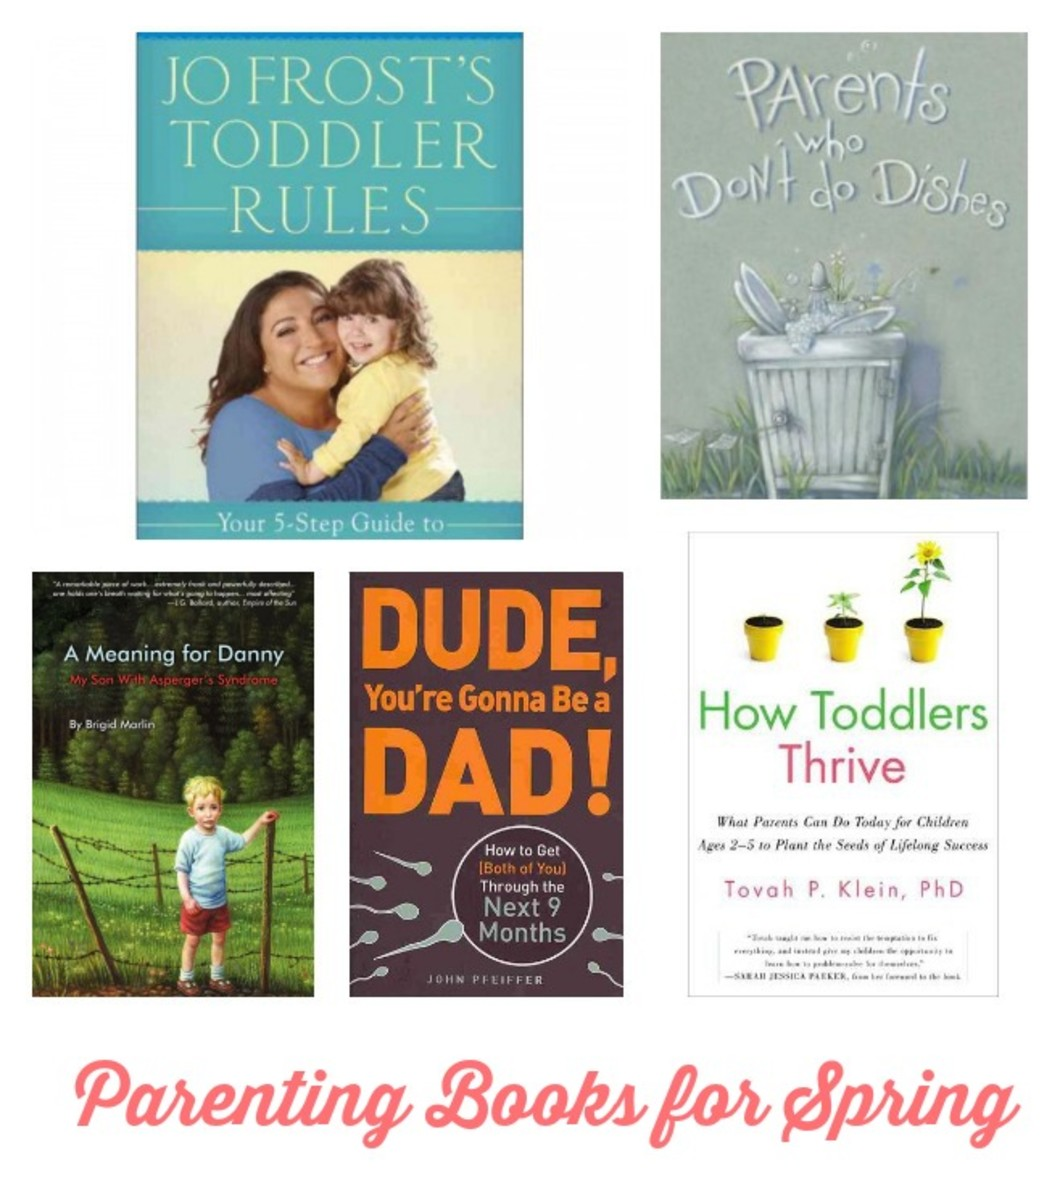 Parenting Books for Spring.jpg.jpg